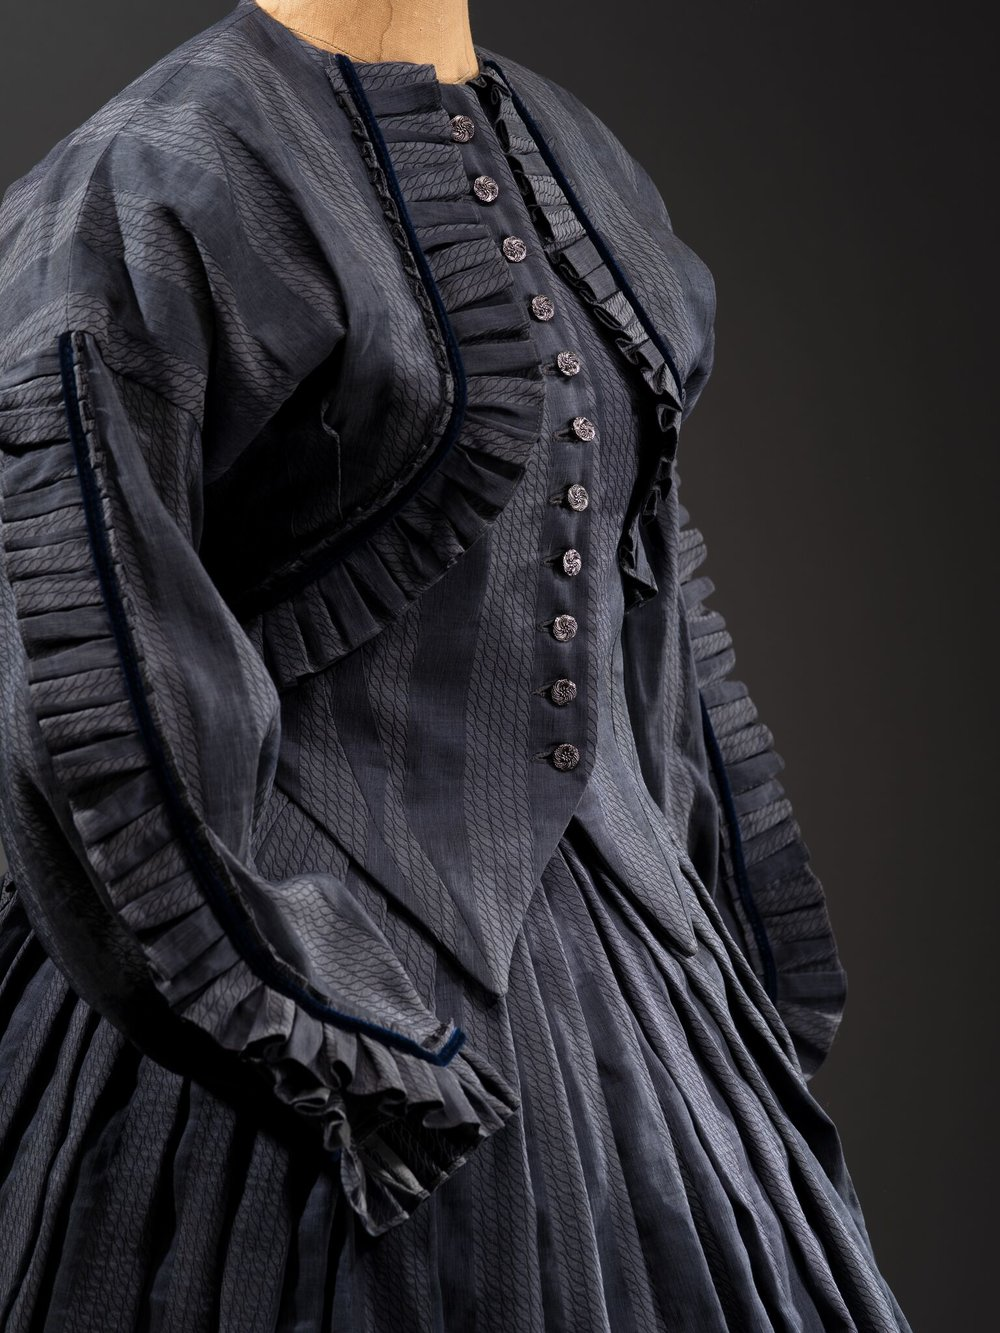 Costume from ROOTS